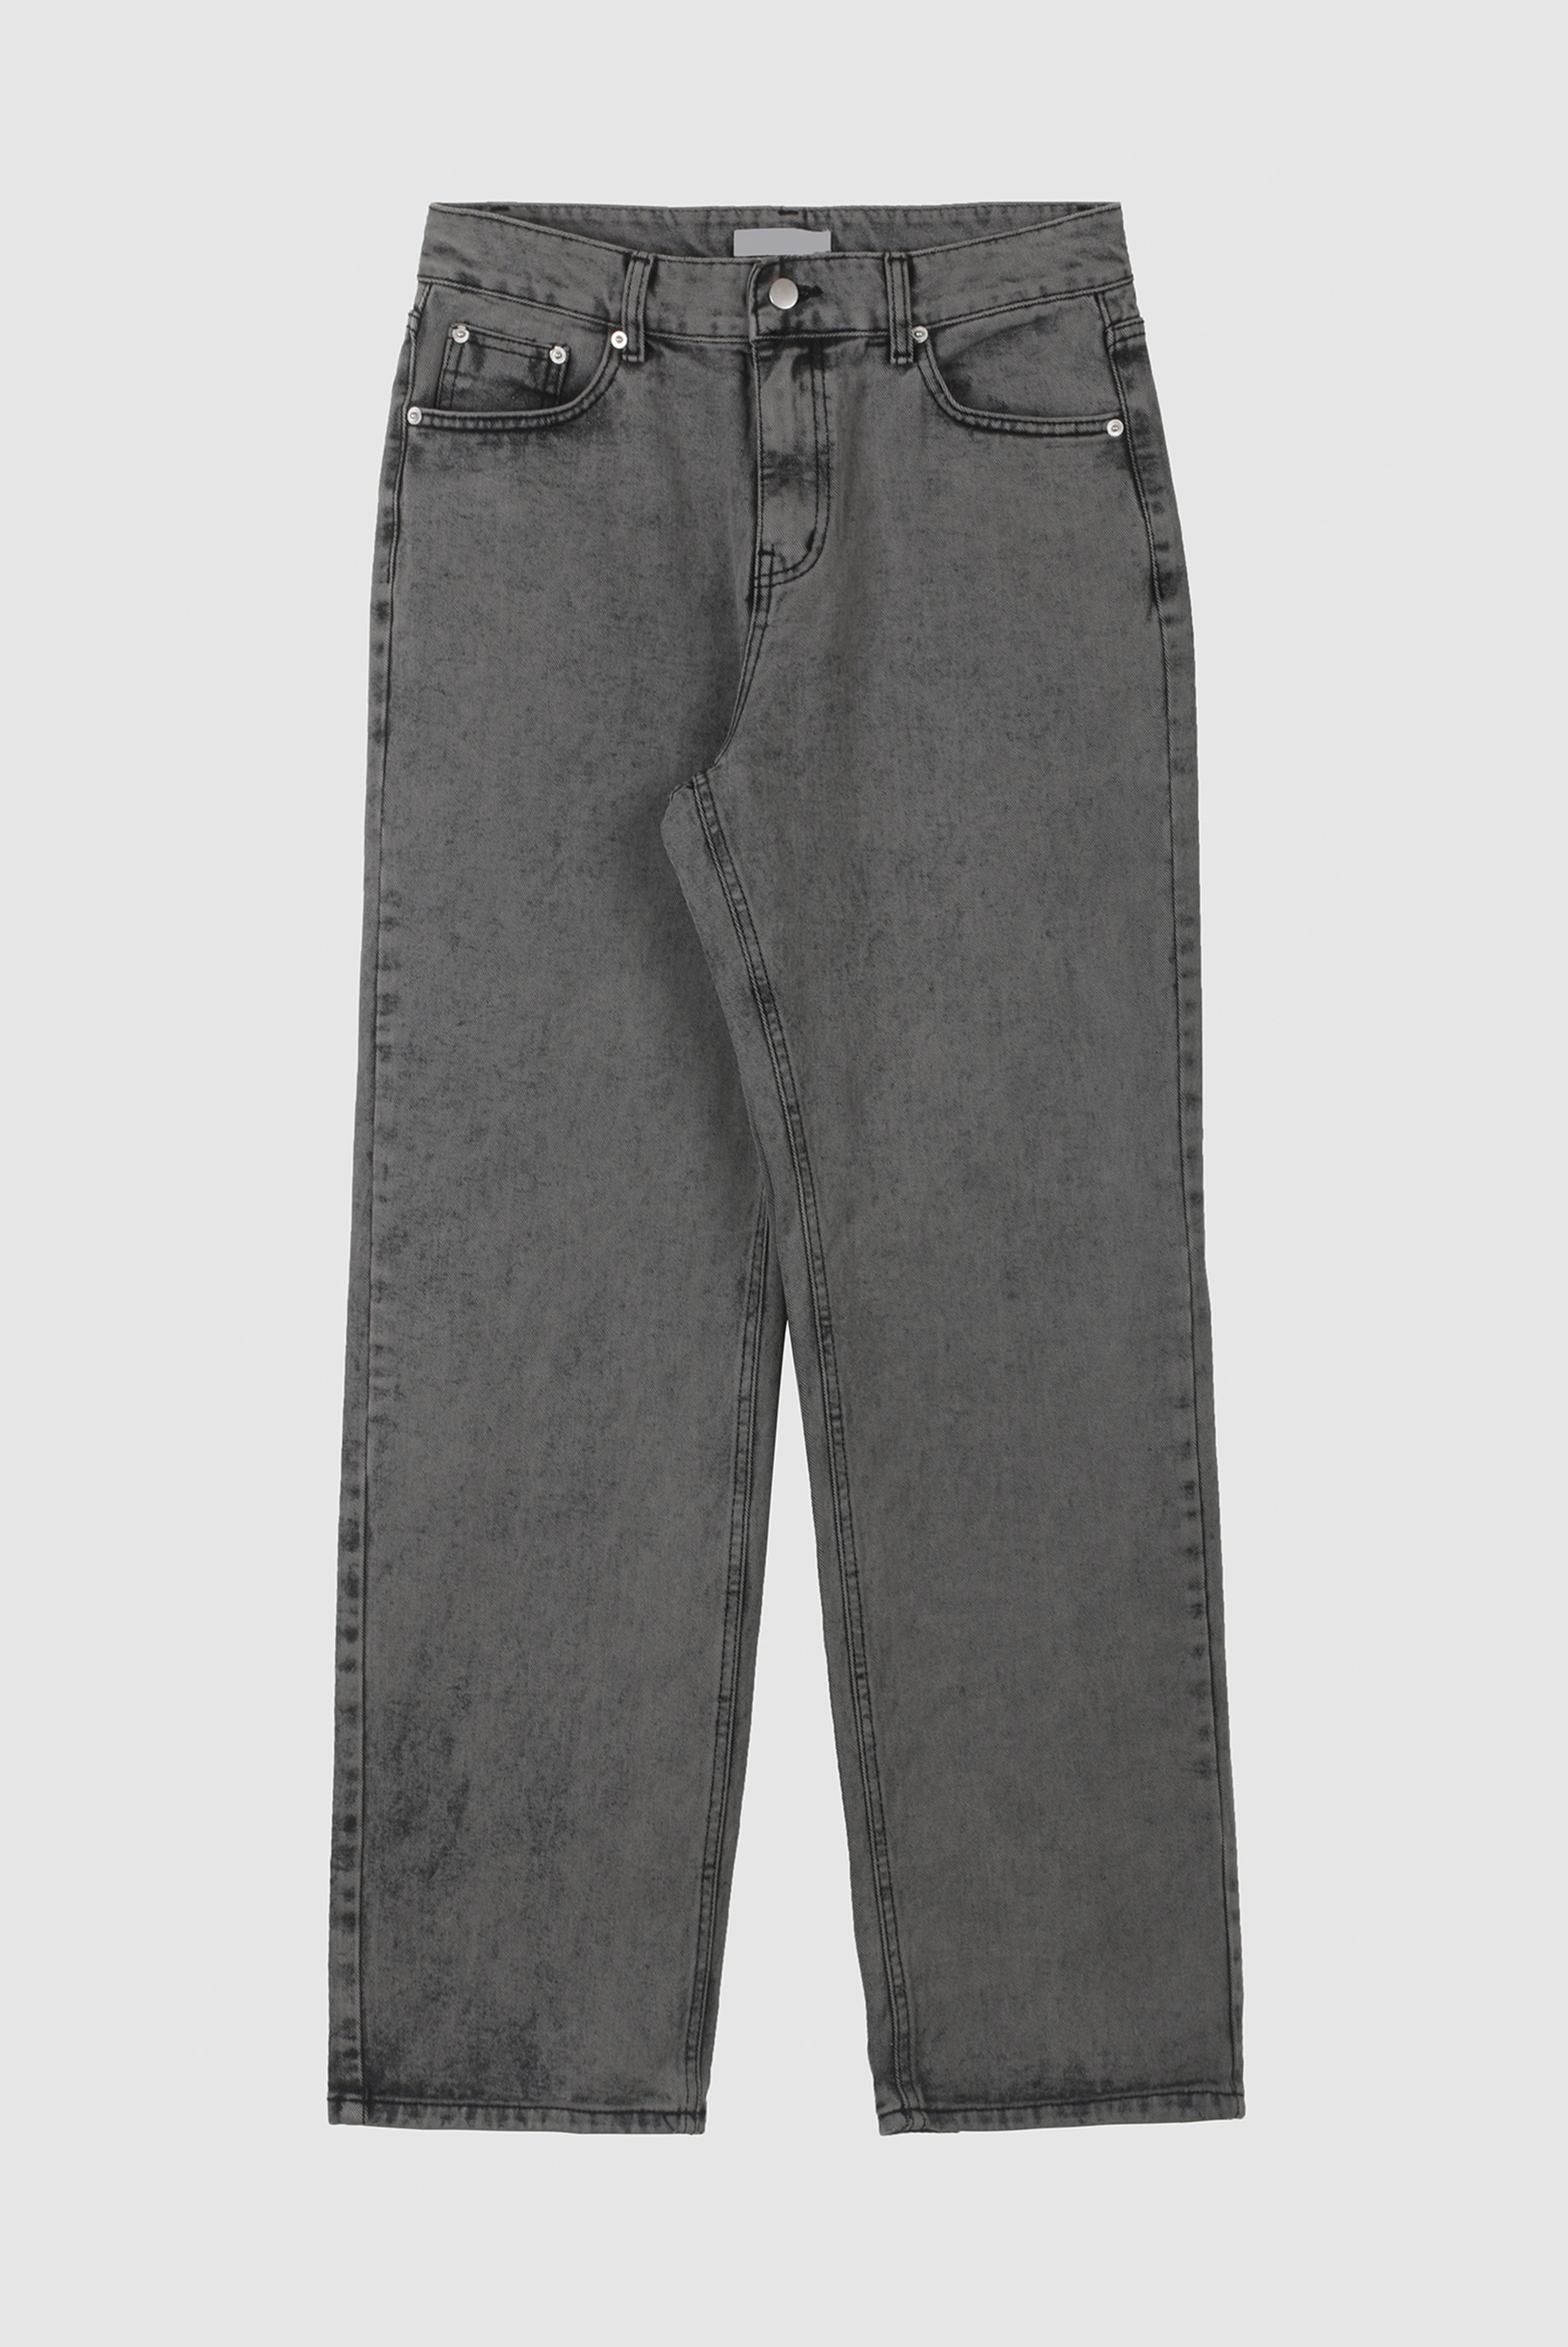 Dying_Color Denim_Pant